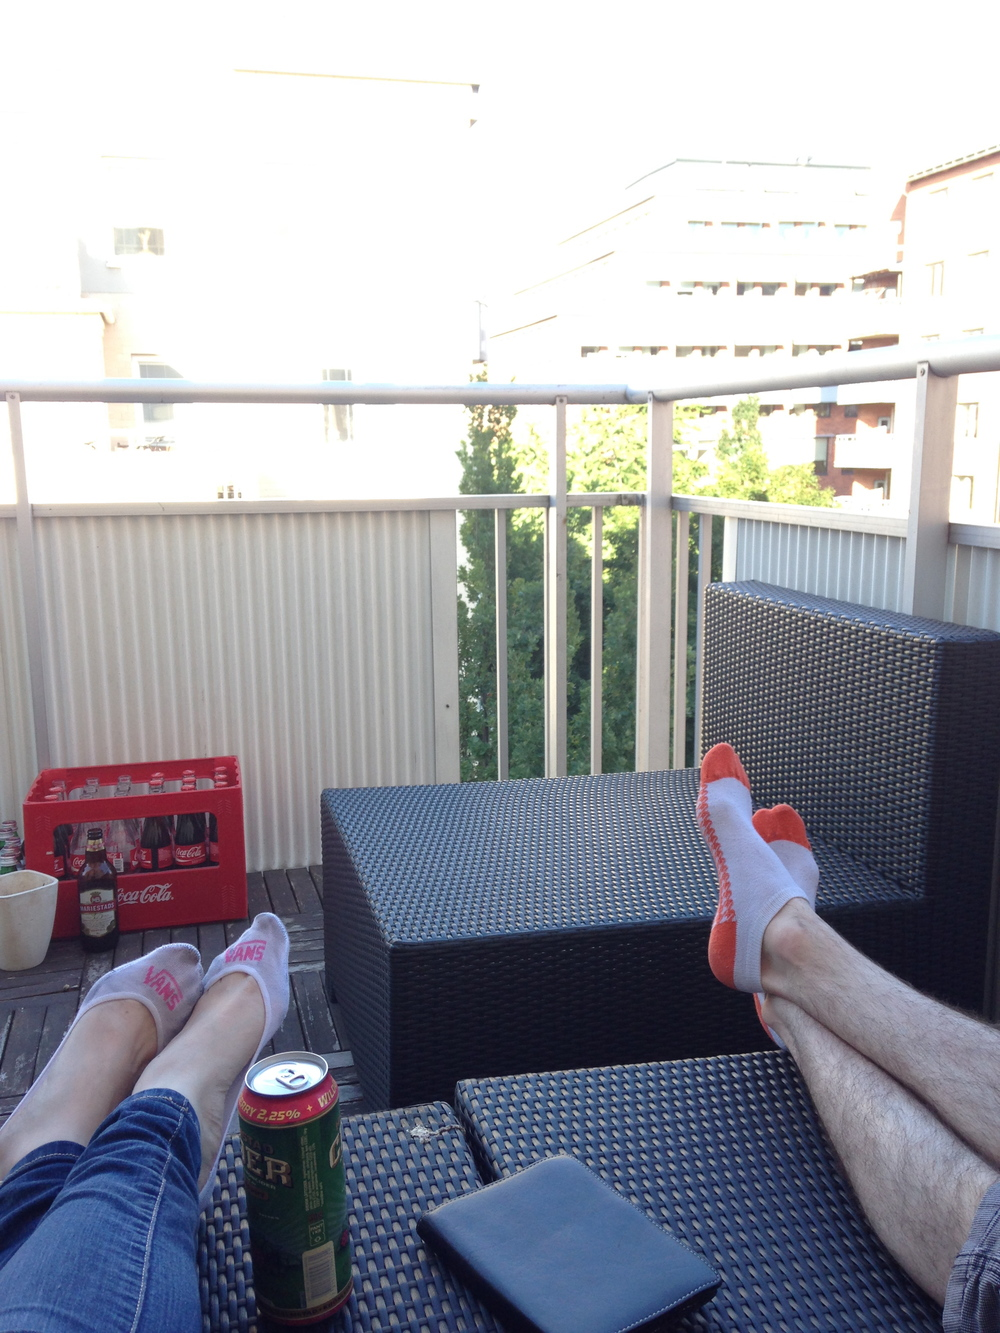 Marcus' balcony was the perfect place to chill out with a can of Swedish cider